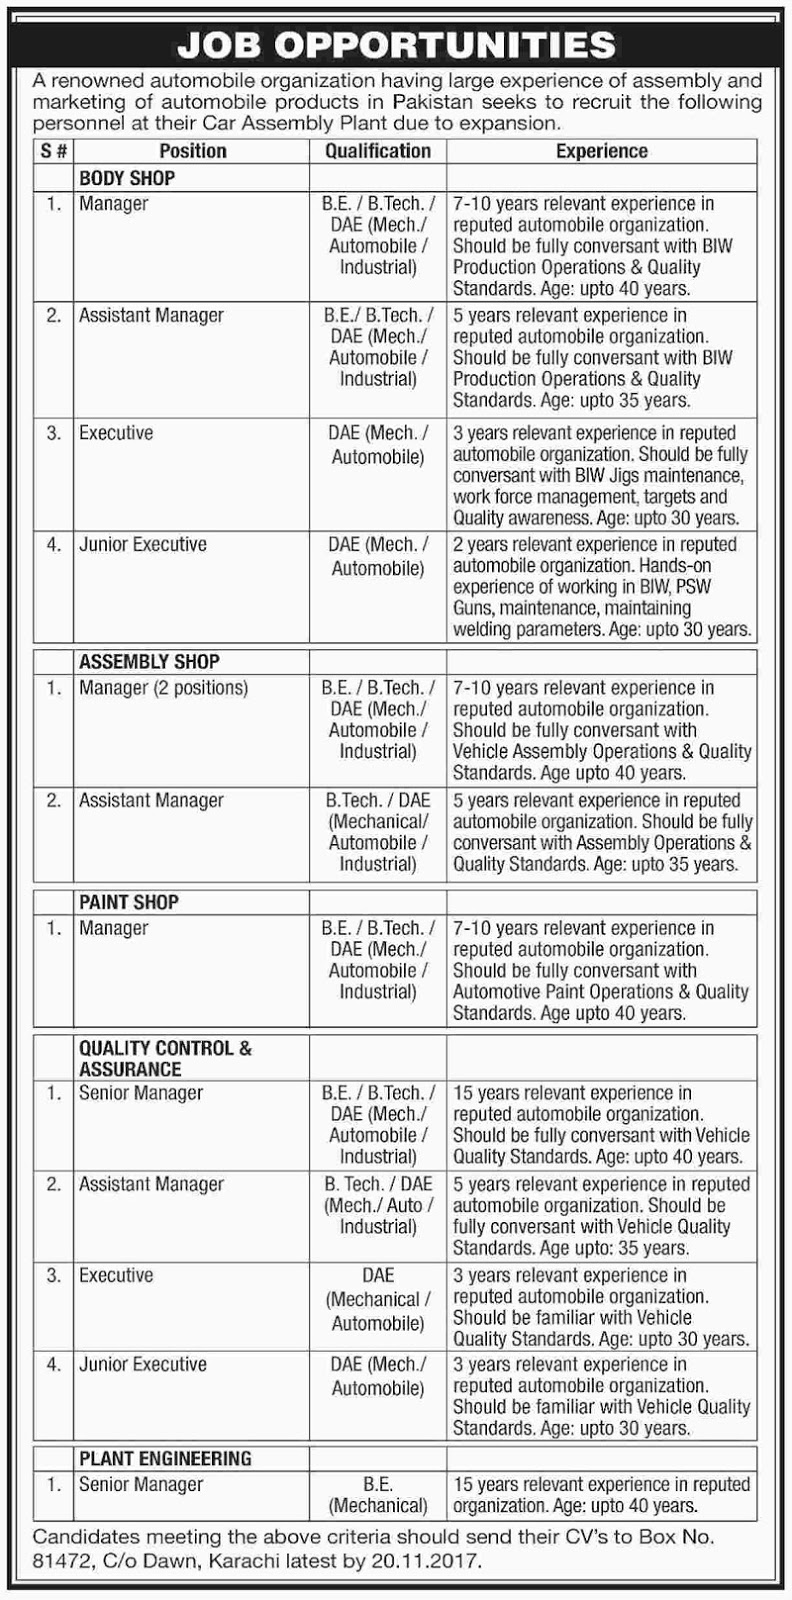 Automobile job opportunities 2017,engineering jobs,DAE jobs,Jobs in Karachi, Jobs in Sindh, Jobs for Engineers, Auto mobile jobs in Pakistan, Jobs in Pakistan, Pakistan Jobs